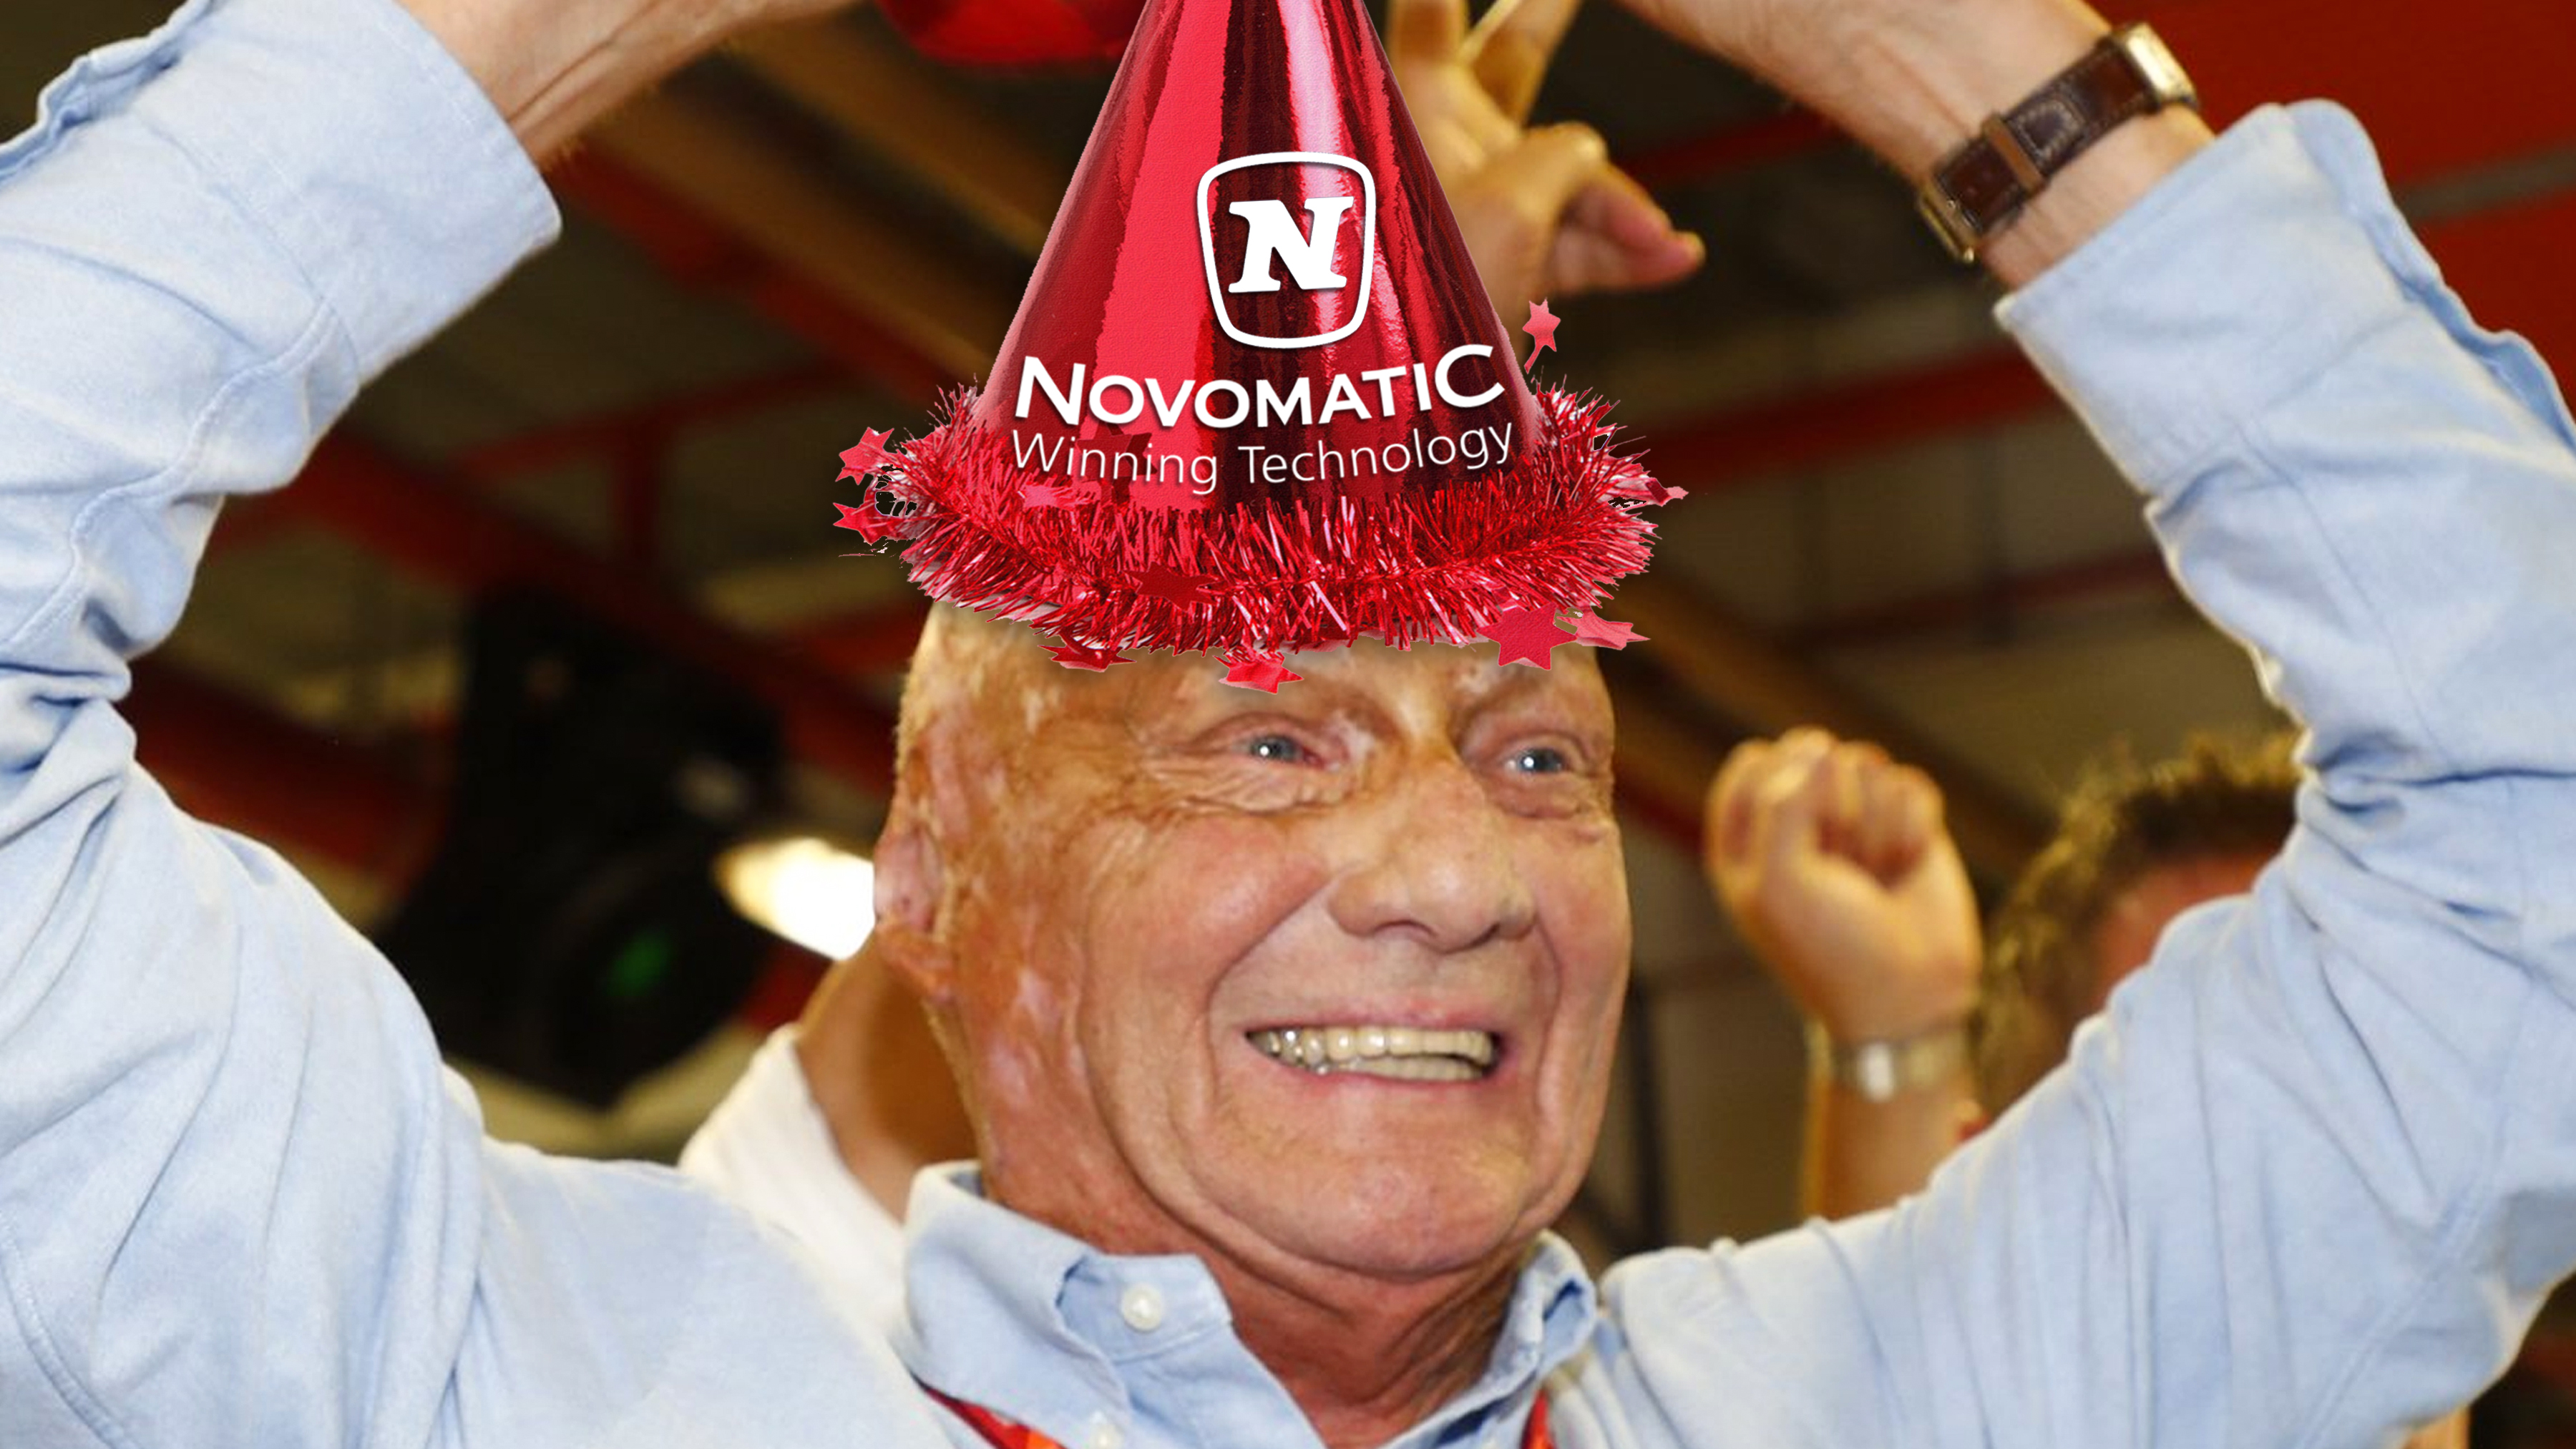 Niki Lauda Wears Sponsors Party Hat